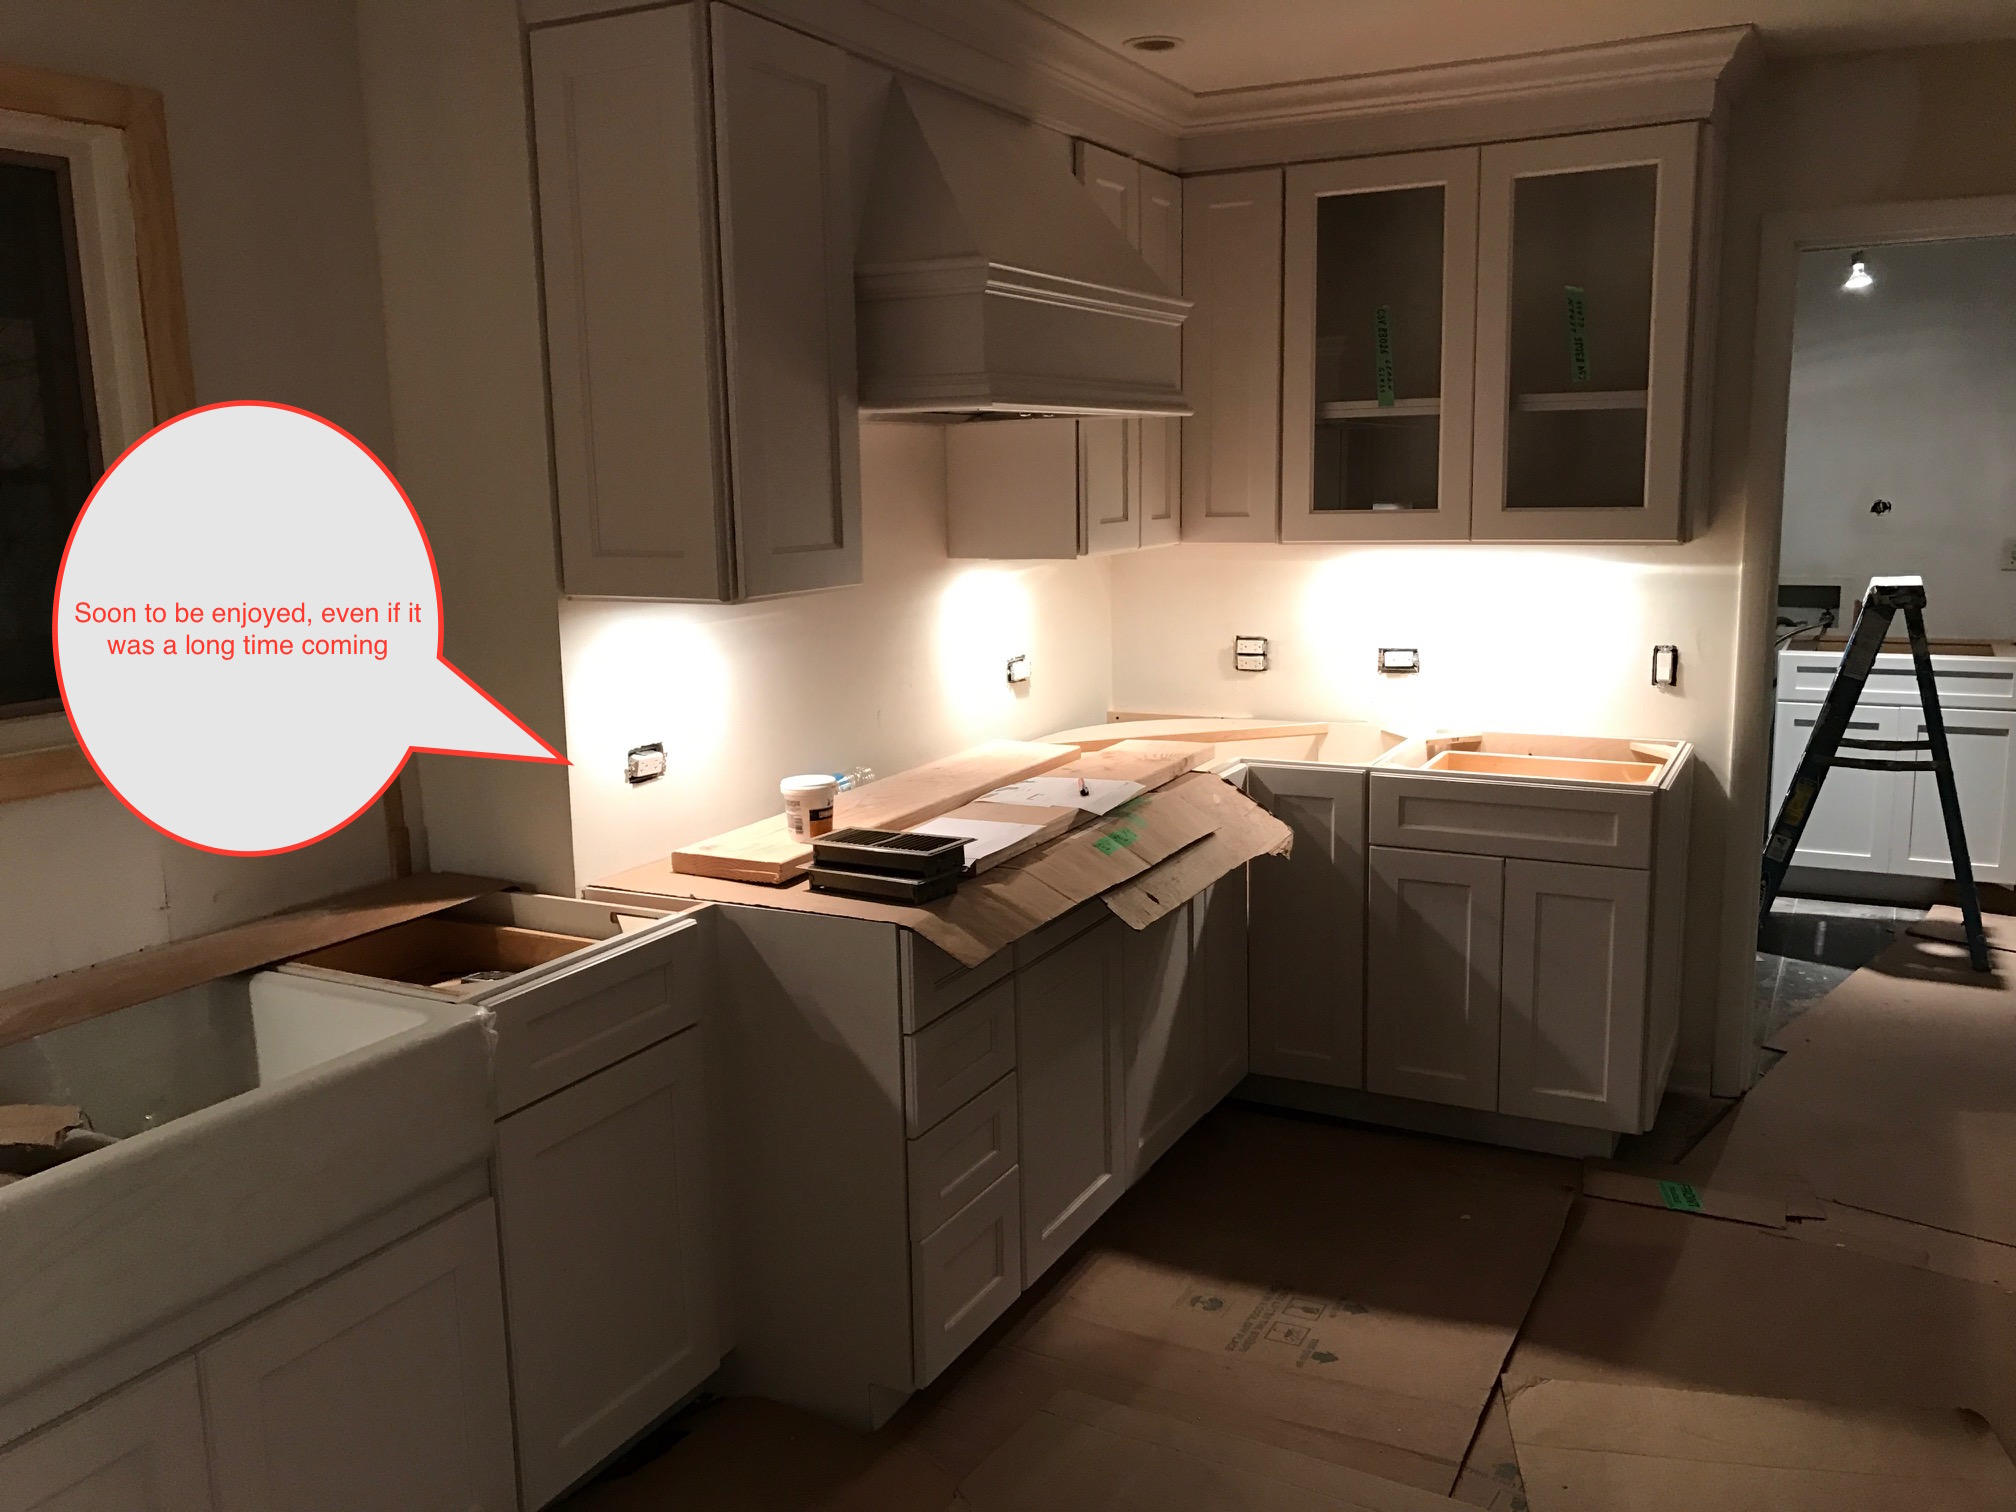 This first floor renovation has been over a year in the making, and the entire job should have been completed within 6 months. We were second on the scene, after the first firm responsible for completing this project was discharged. Hats off to the clients who kept their cool throughout the entire ordeal.